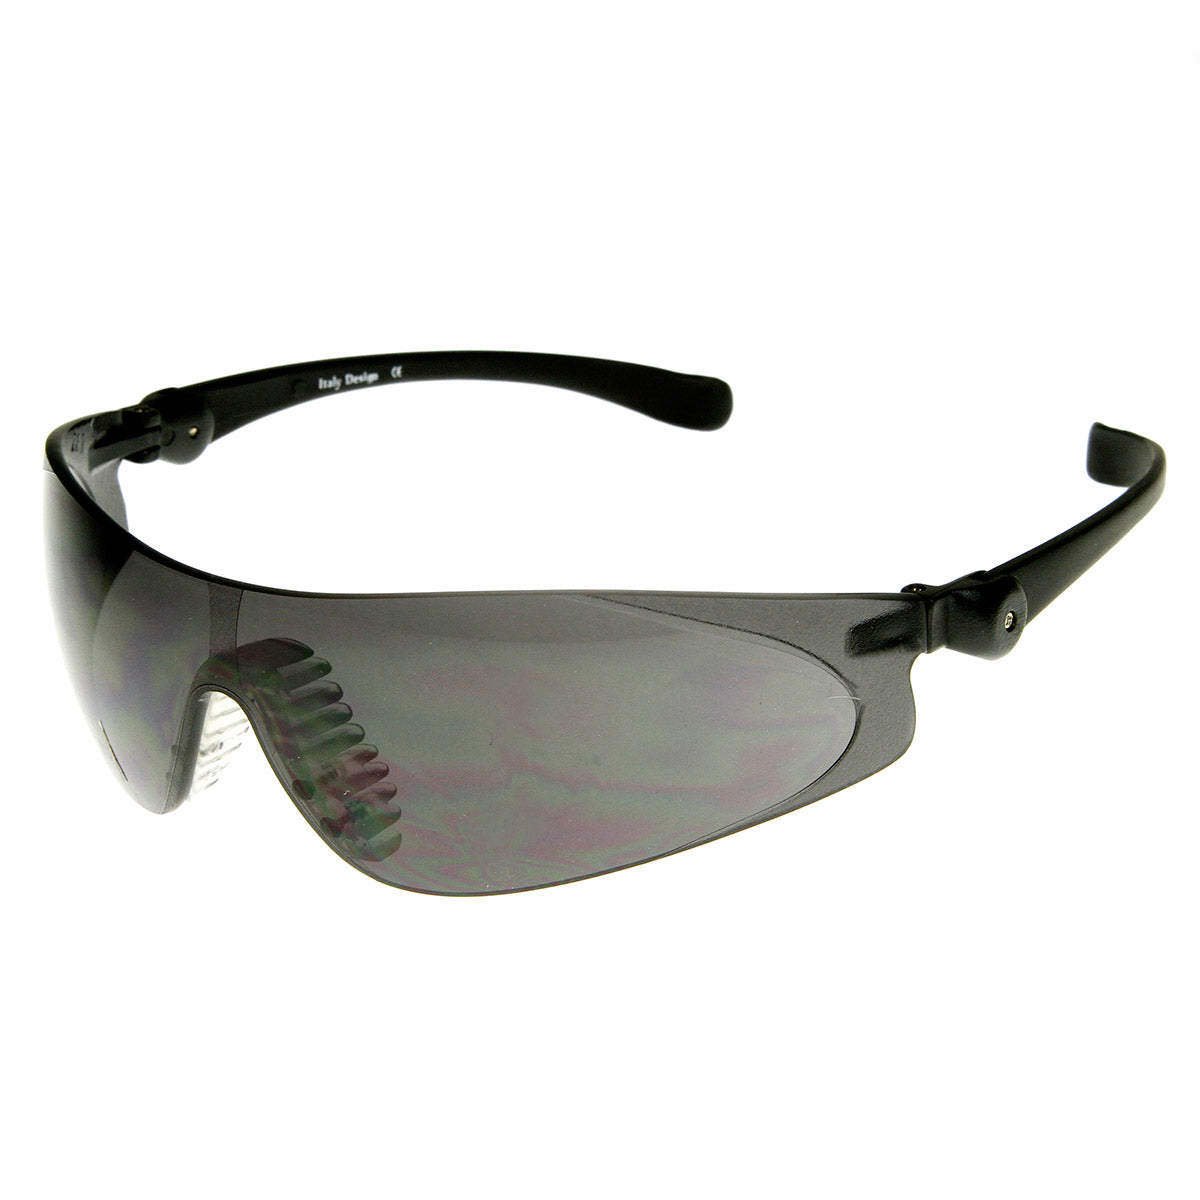 2-Way Adjustable Professional Protective Eyewear Shield Safety Goggles - sunglass.la